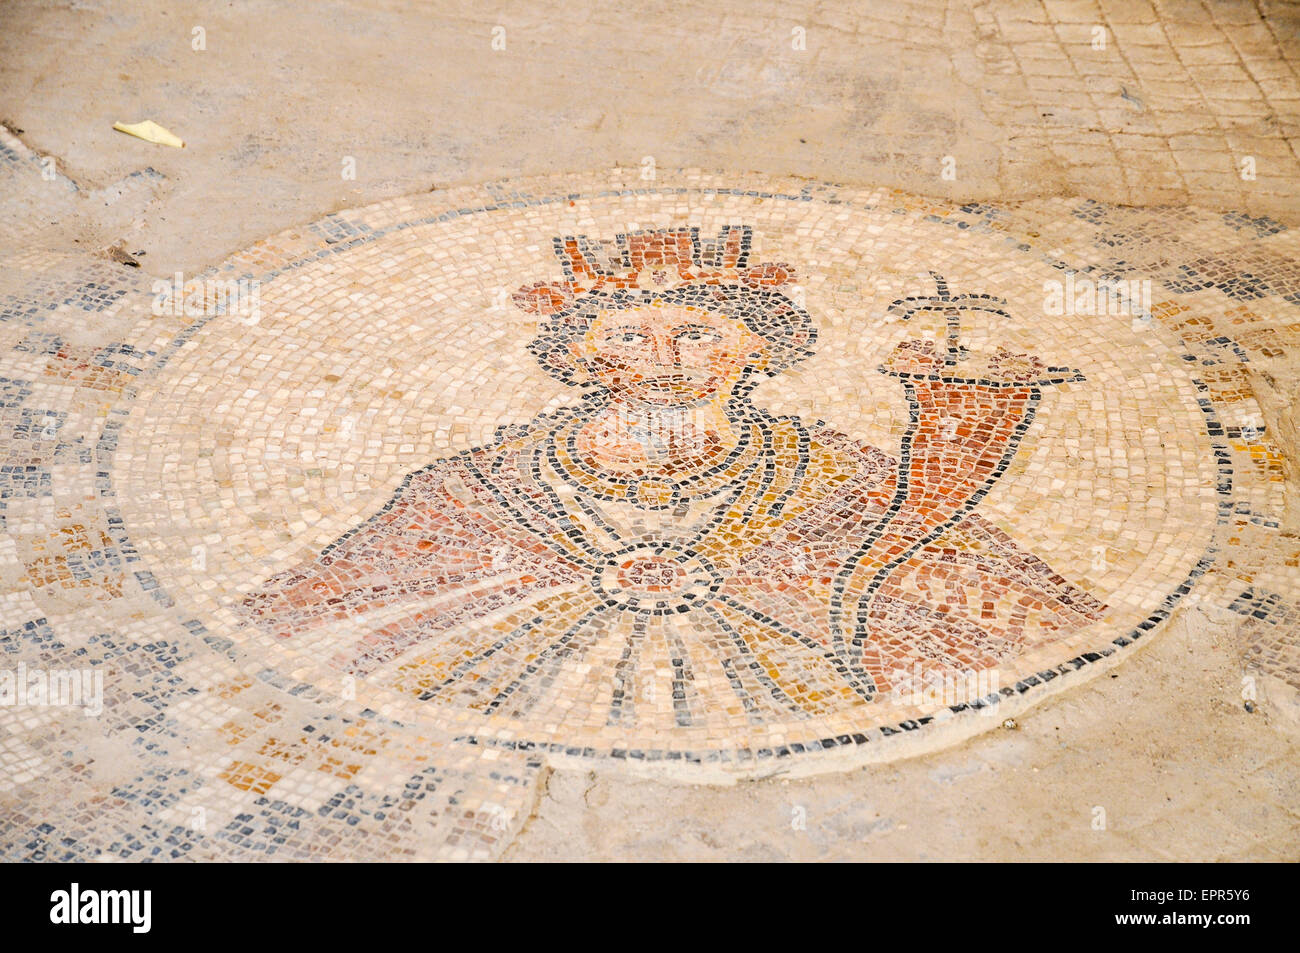 Israel, Bet Shean, The Sigma, A mosaic depicting Tyche, Goddess of the city. This is a copy, the original mosaic - Stock Image